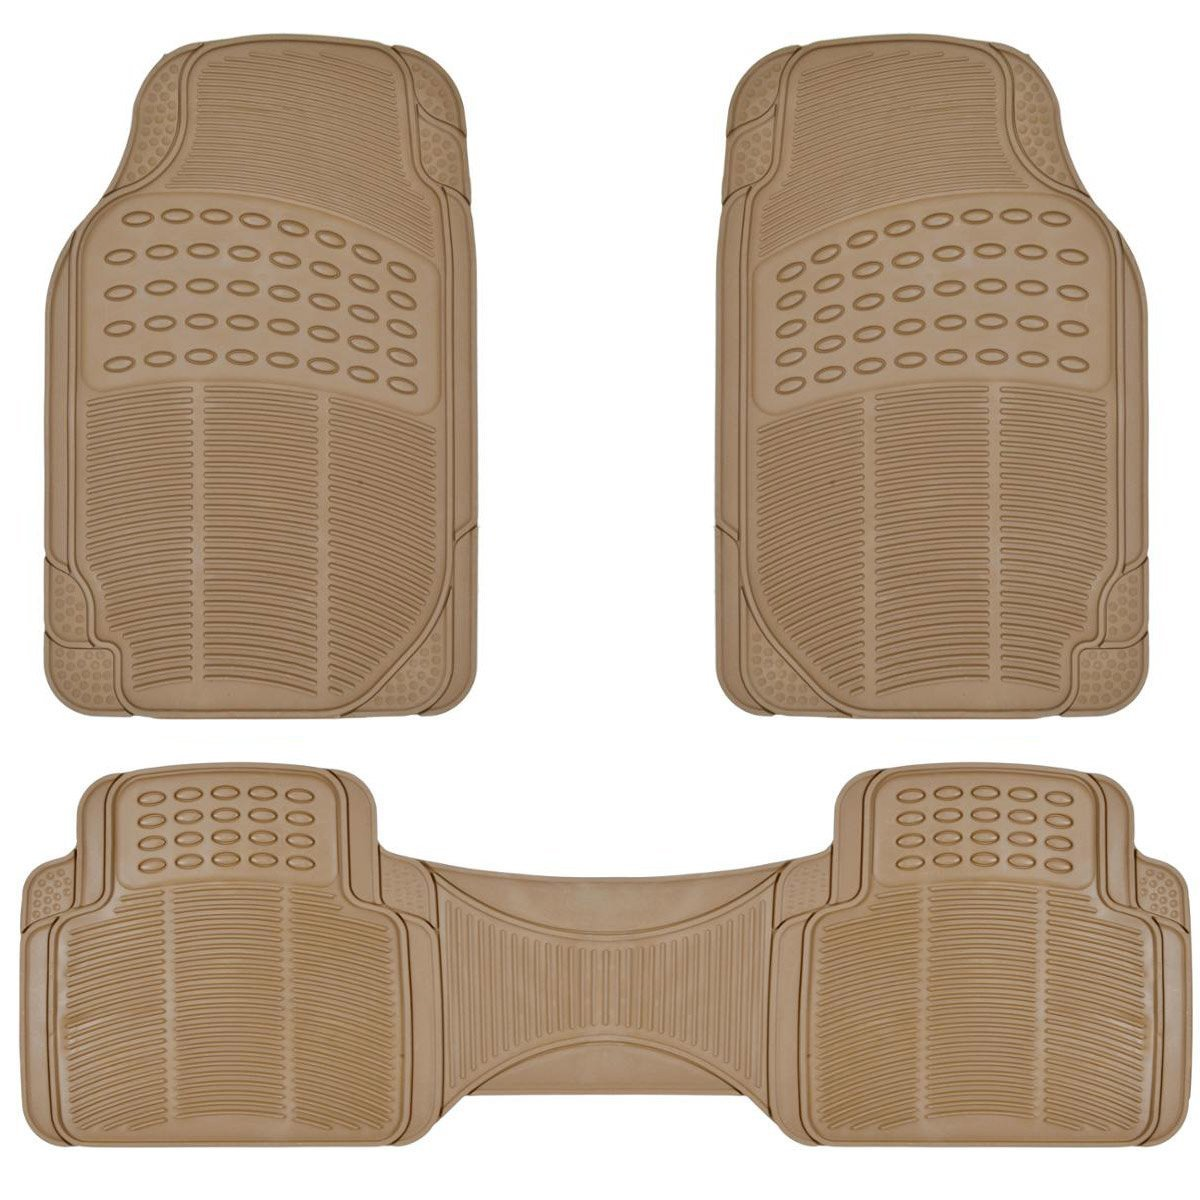 Beige All Weather 3 Piece Set Heavy Duty Rubber Auto Floor Mats Liner for Auto Car Truck SUV